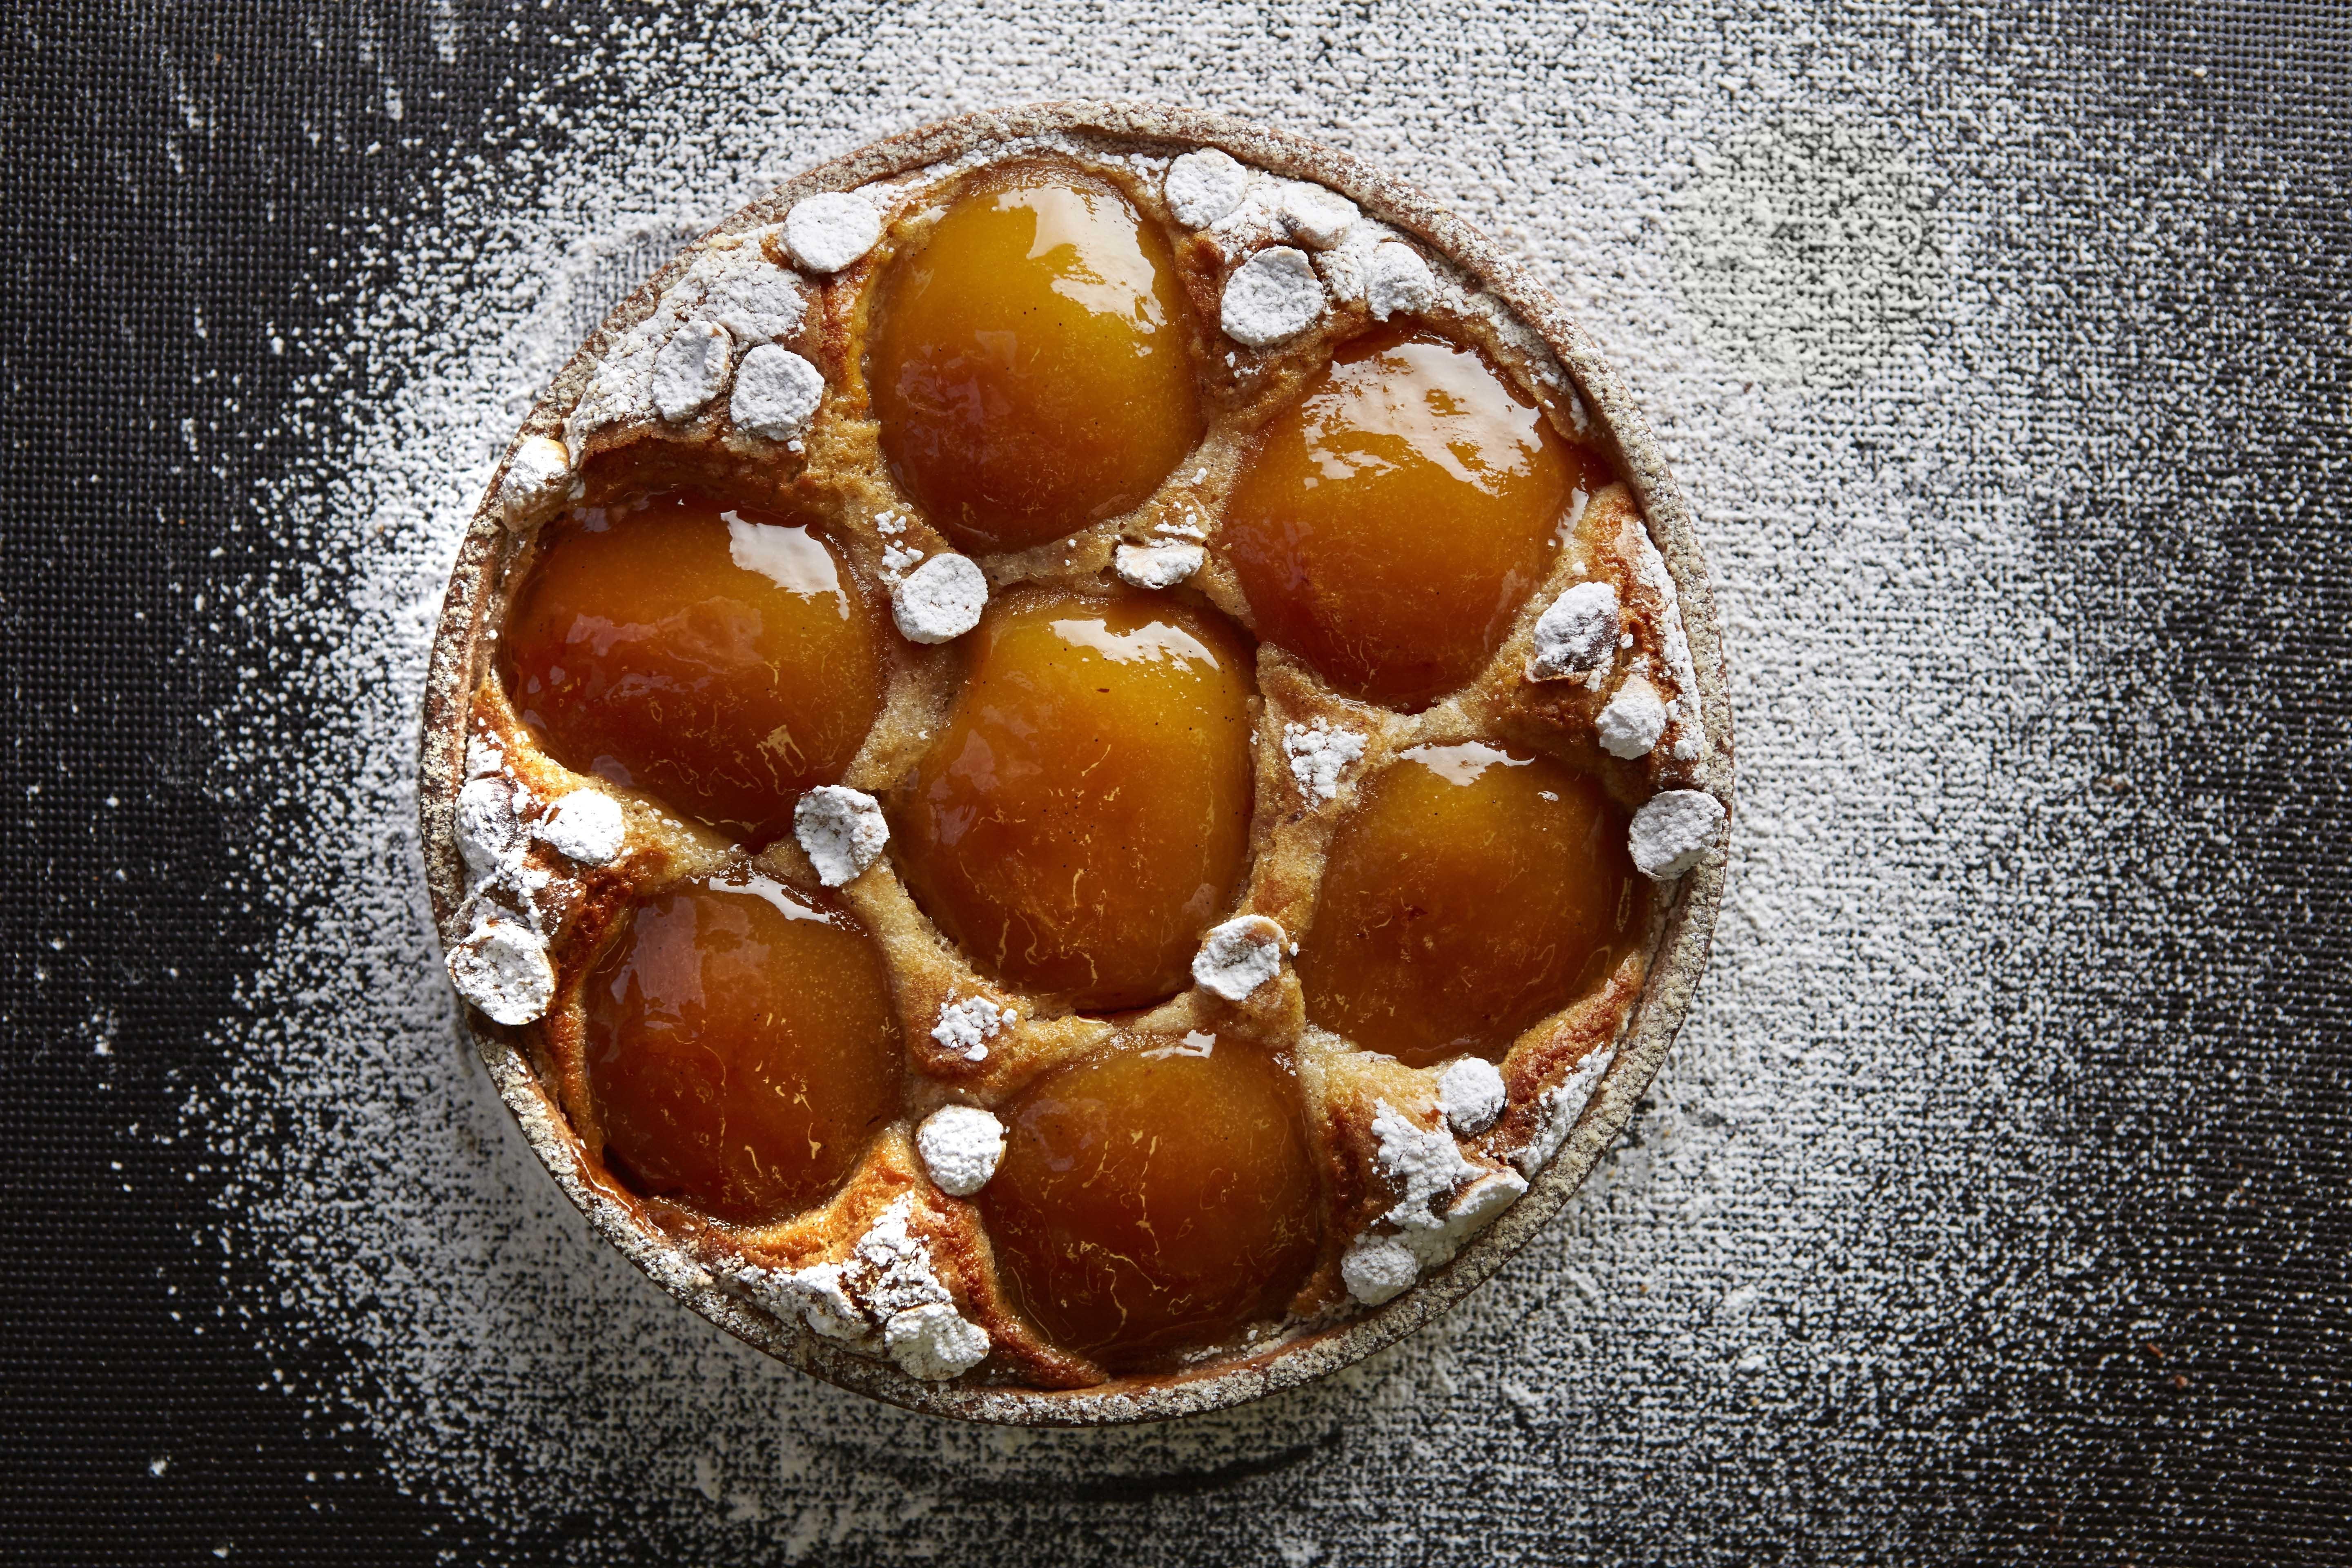 Recipe: Cider-Infused Caramelized Apple Tart with Grapefruit Jam